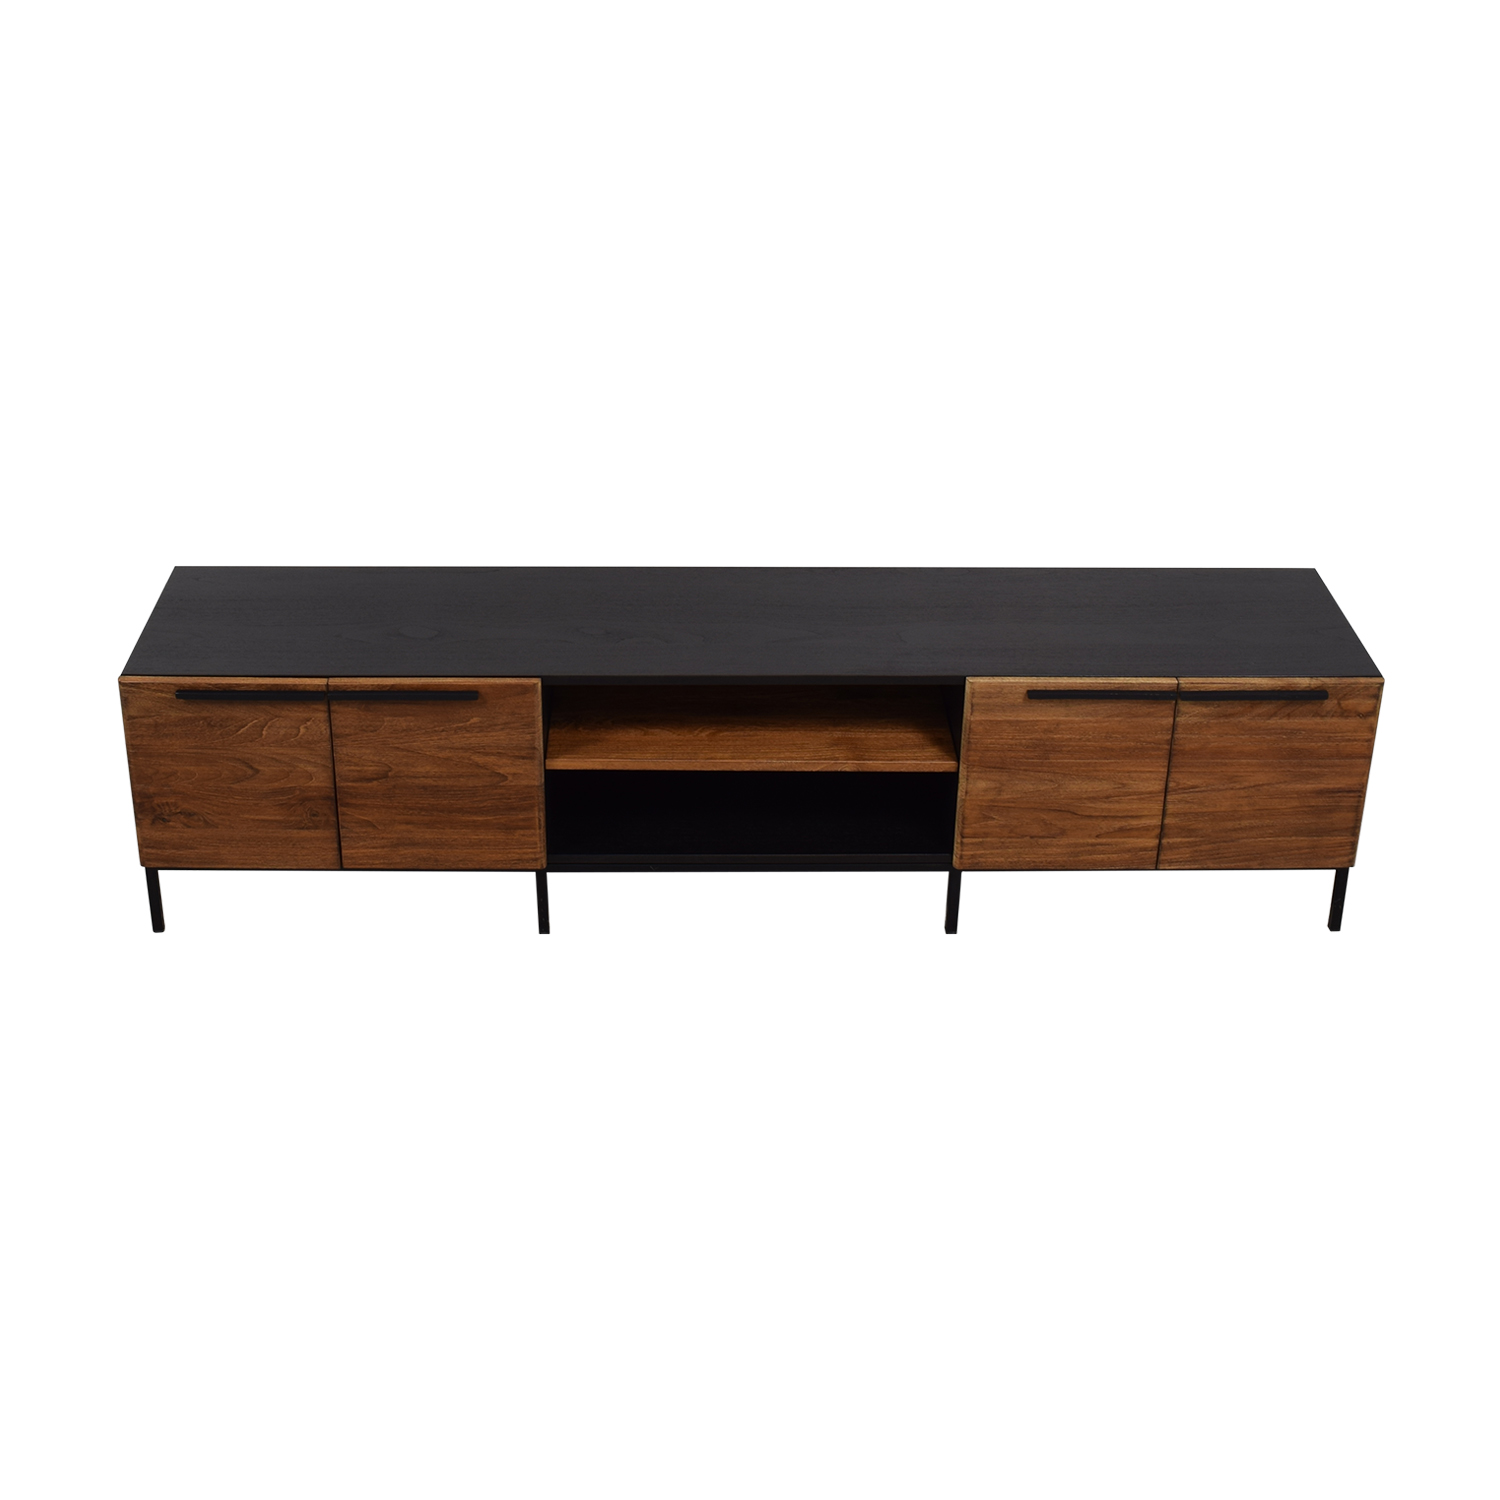 shop Crate & Barrel Crate & Barrel Rigby Natural Large Media Console with Base online